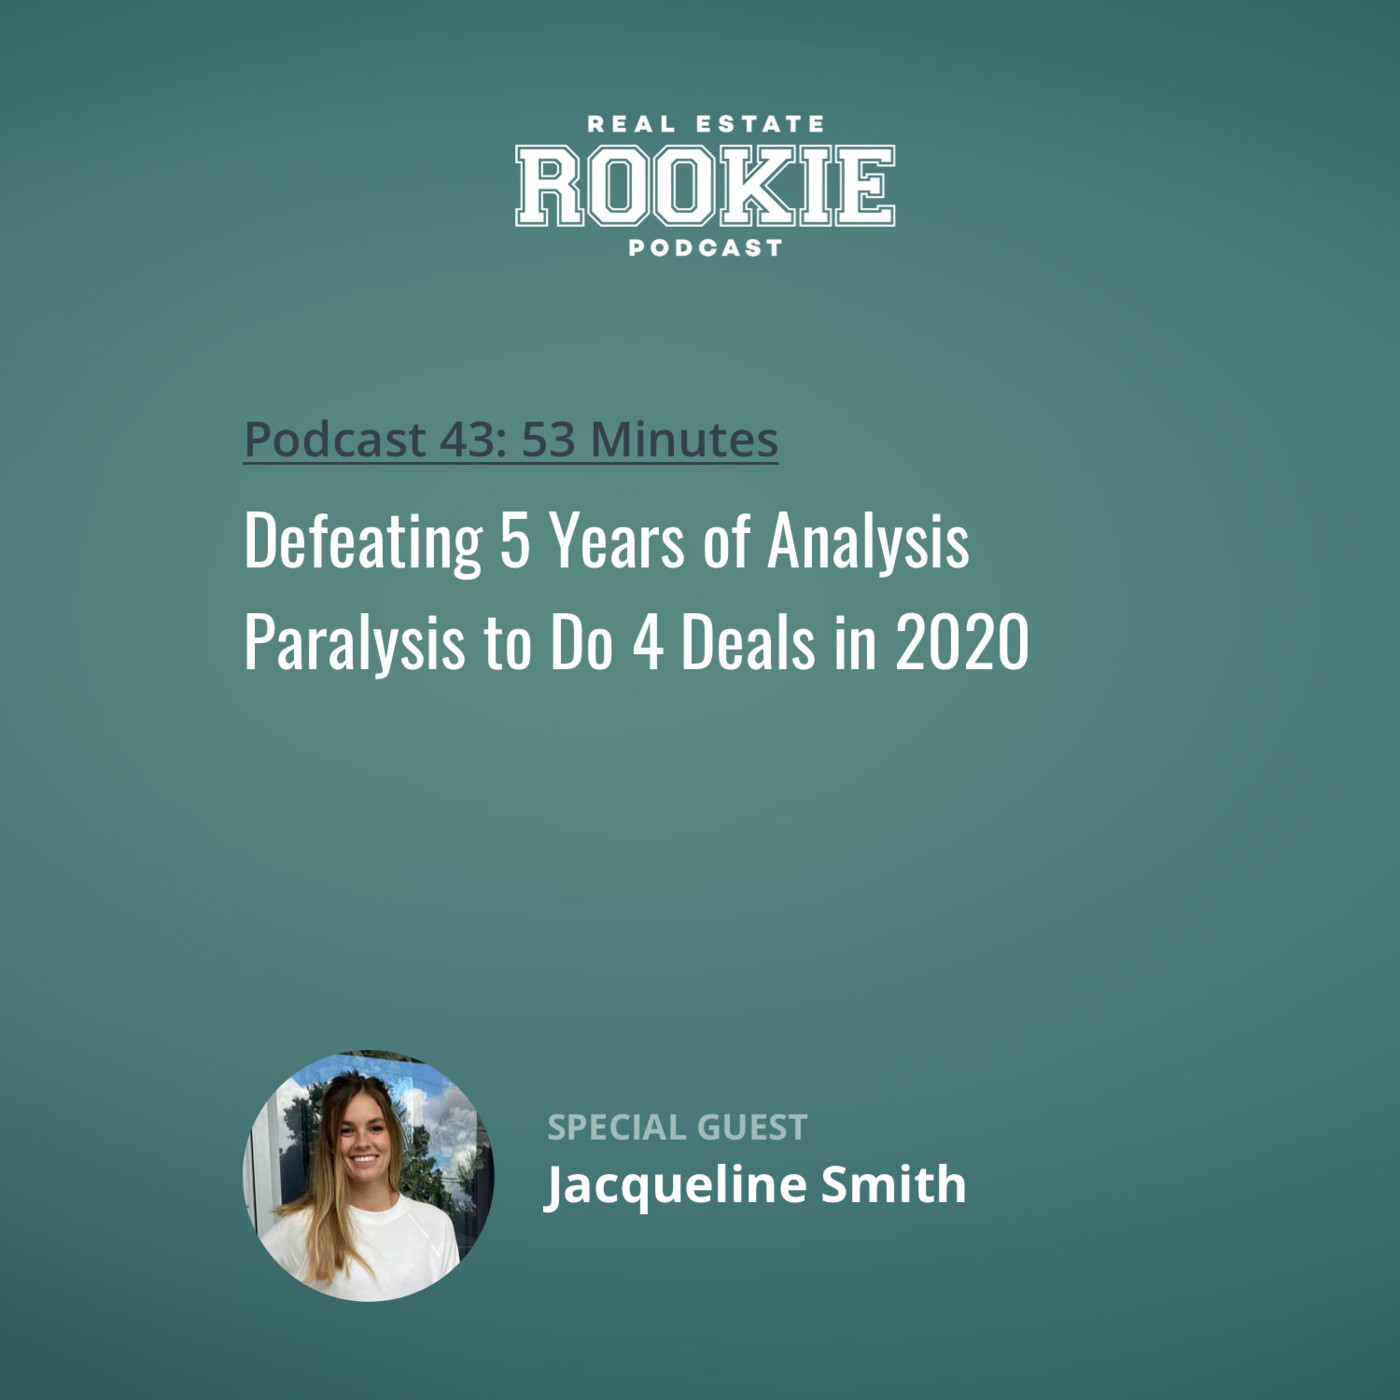 Defeating 5 Years of Analysis Paralysis to Do 4 Deals in 2020 with Jacqueline Smith